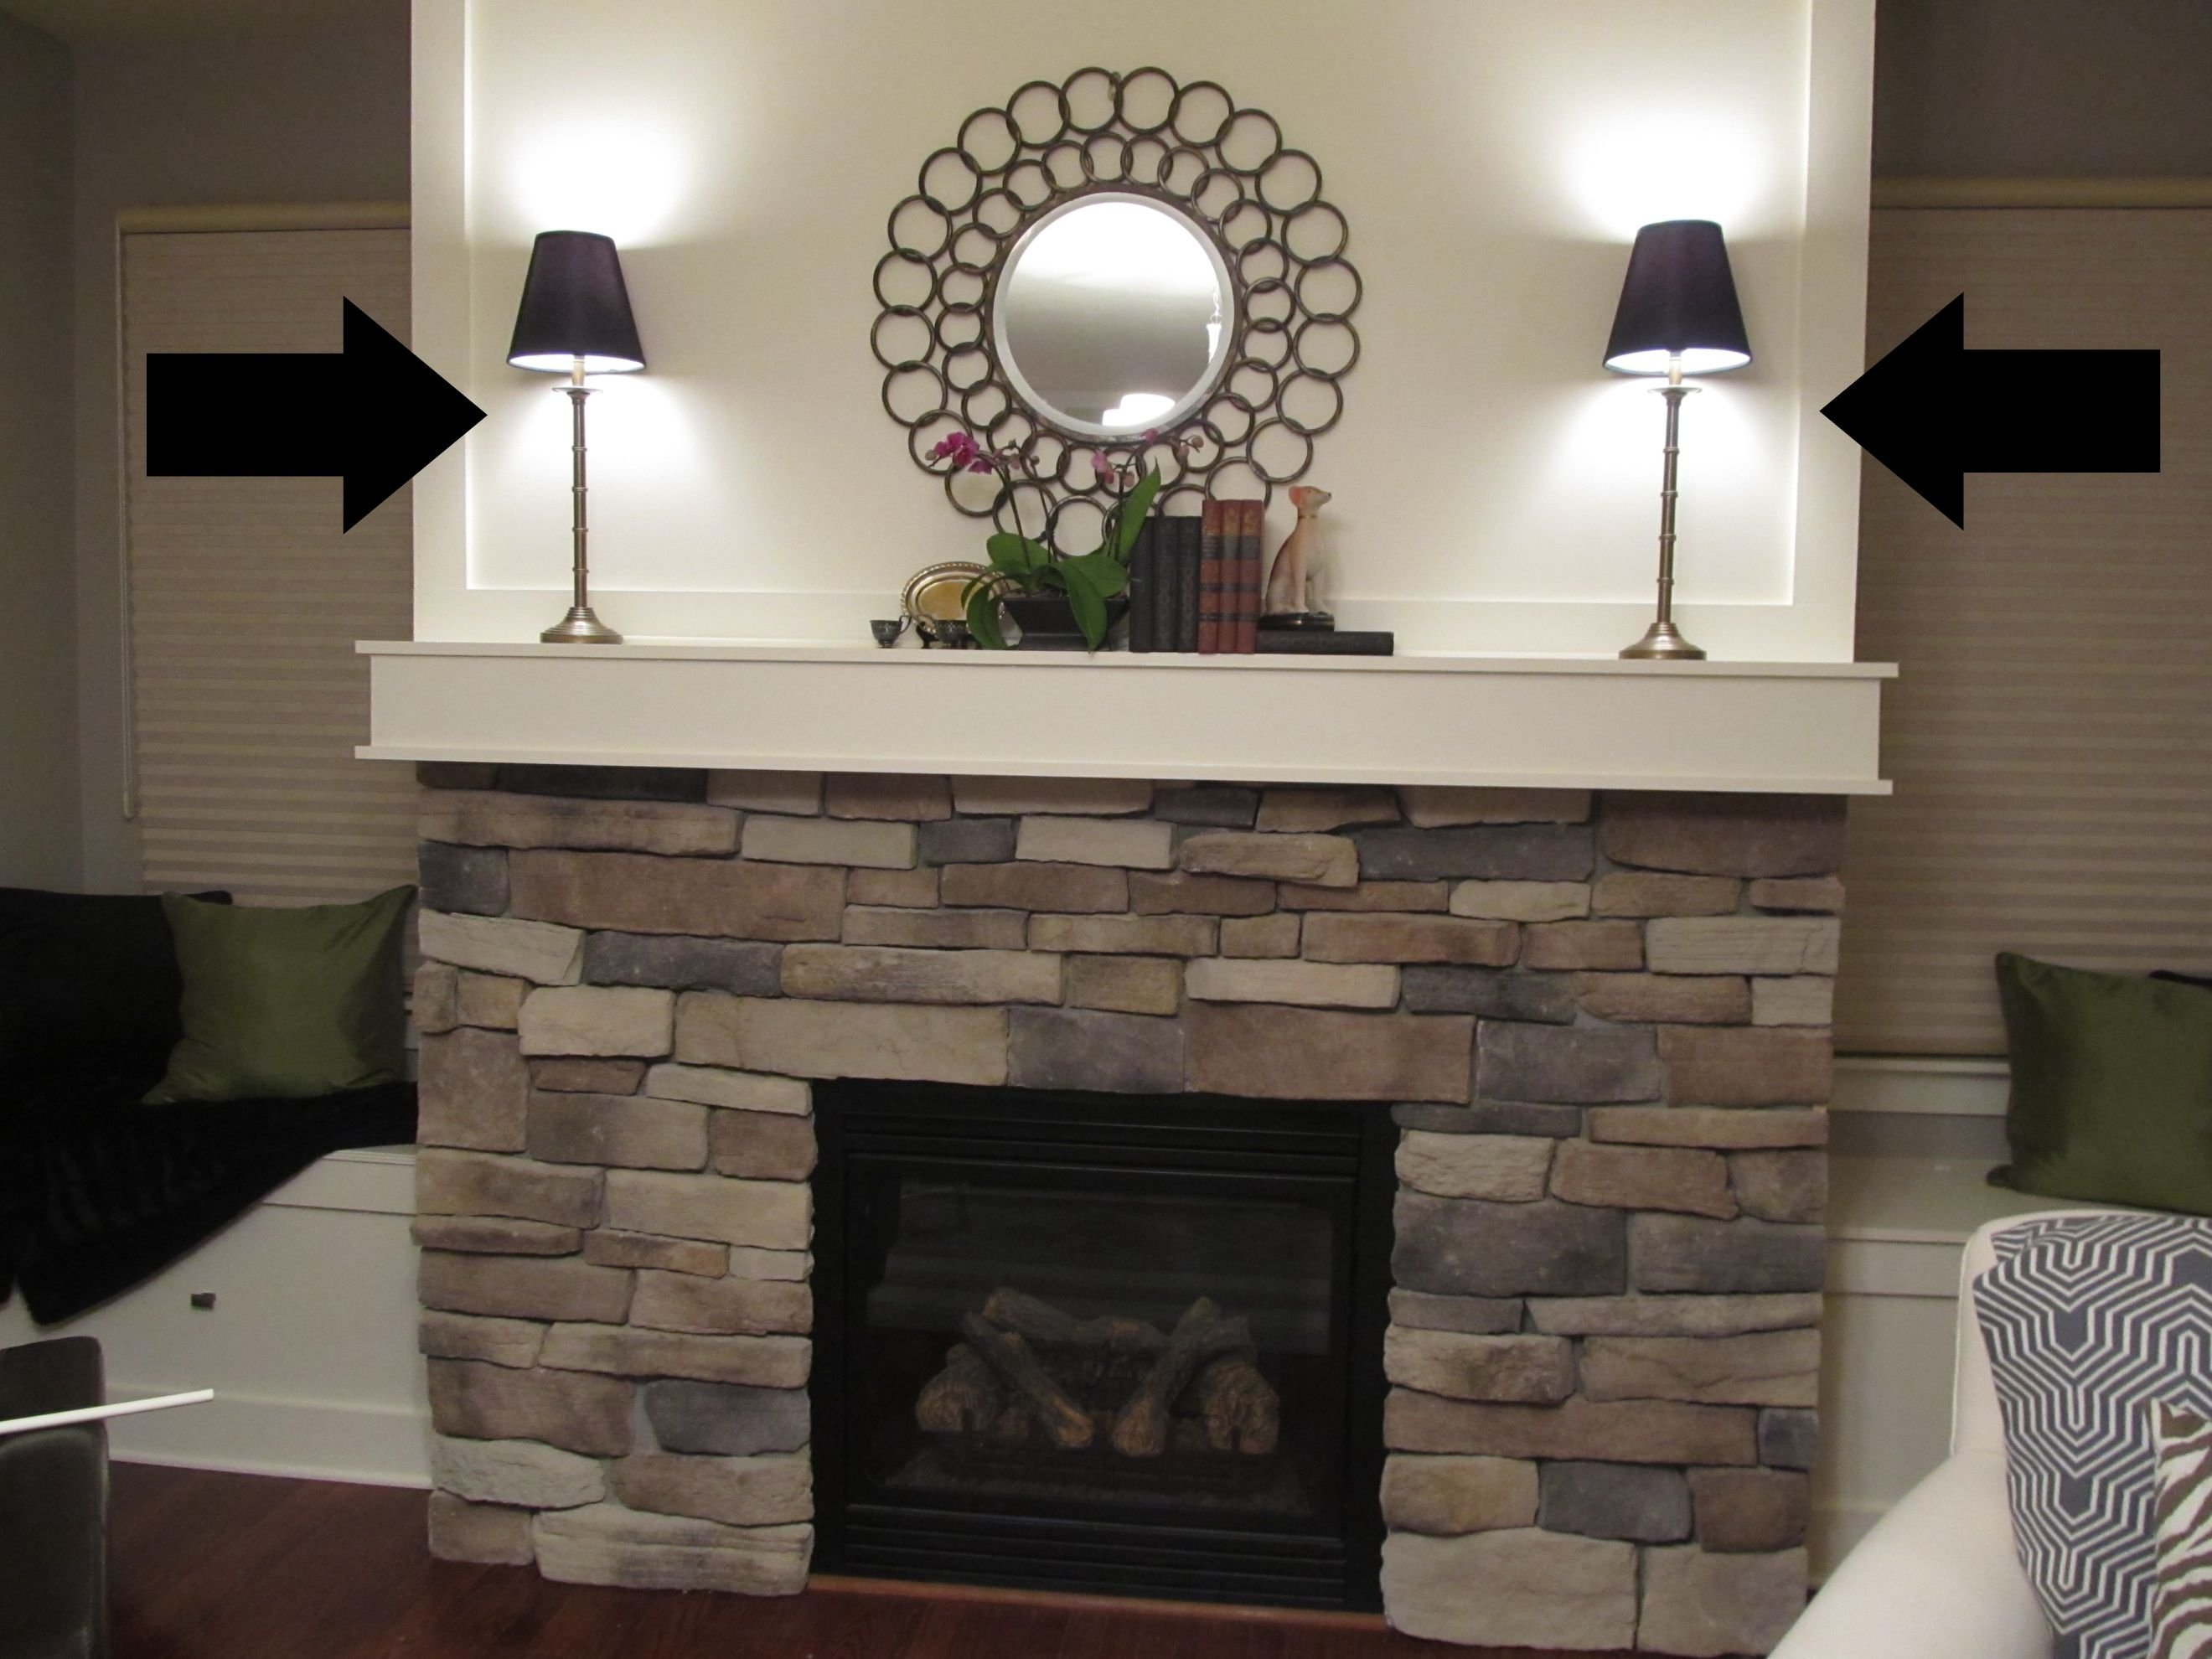 10 Spectacular Decorating Ideas For Fireplace Mantel copy magnificent fireplace mantel decor ideas fireplace decorating 2020